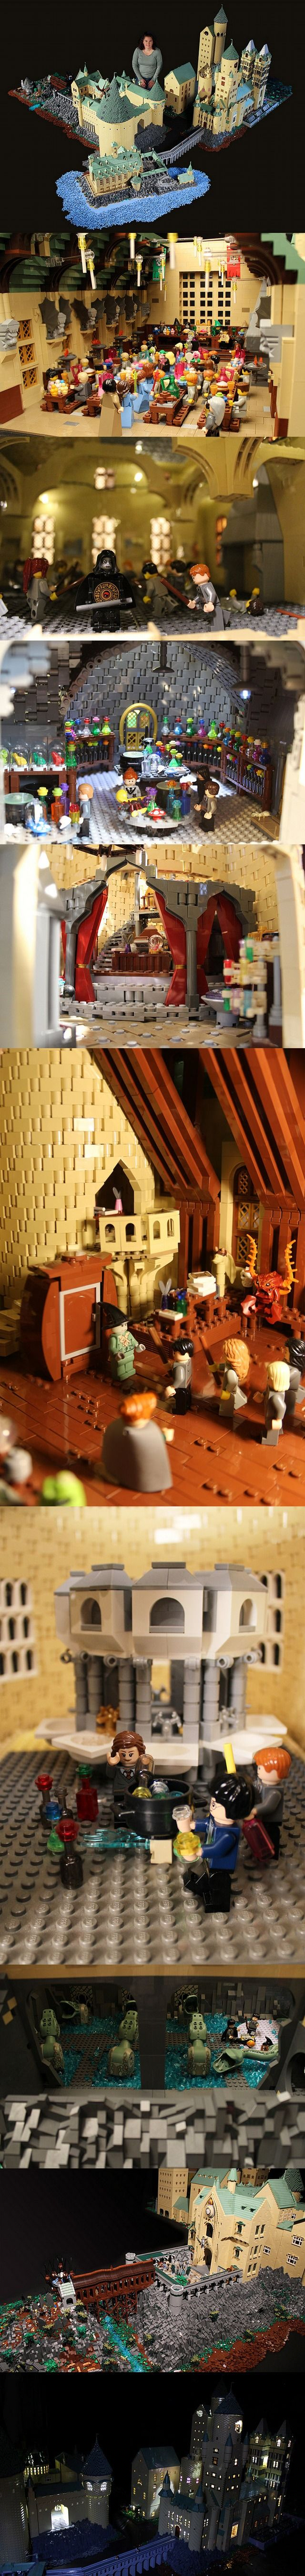 Welcome to Hogwarts School of Witchcraft and Wizardry. This version of Hogwarts is made of about 400,000 bricks and took 12 months to build. It is designed to be architecturally accurate and completely playable. It breaks into sections that pack into 35 large flat boxes or shelves.